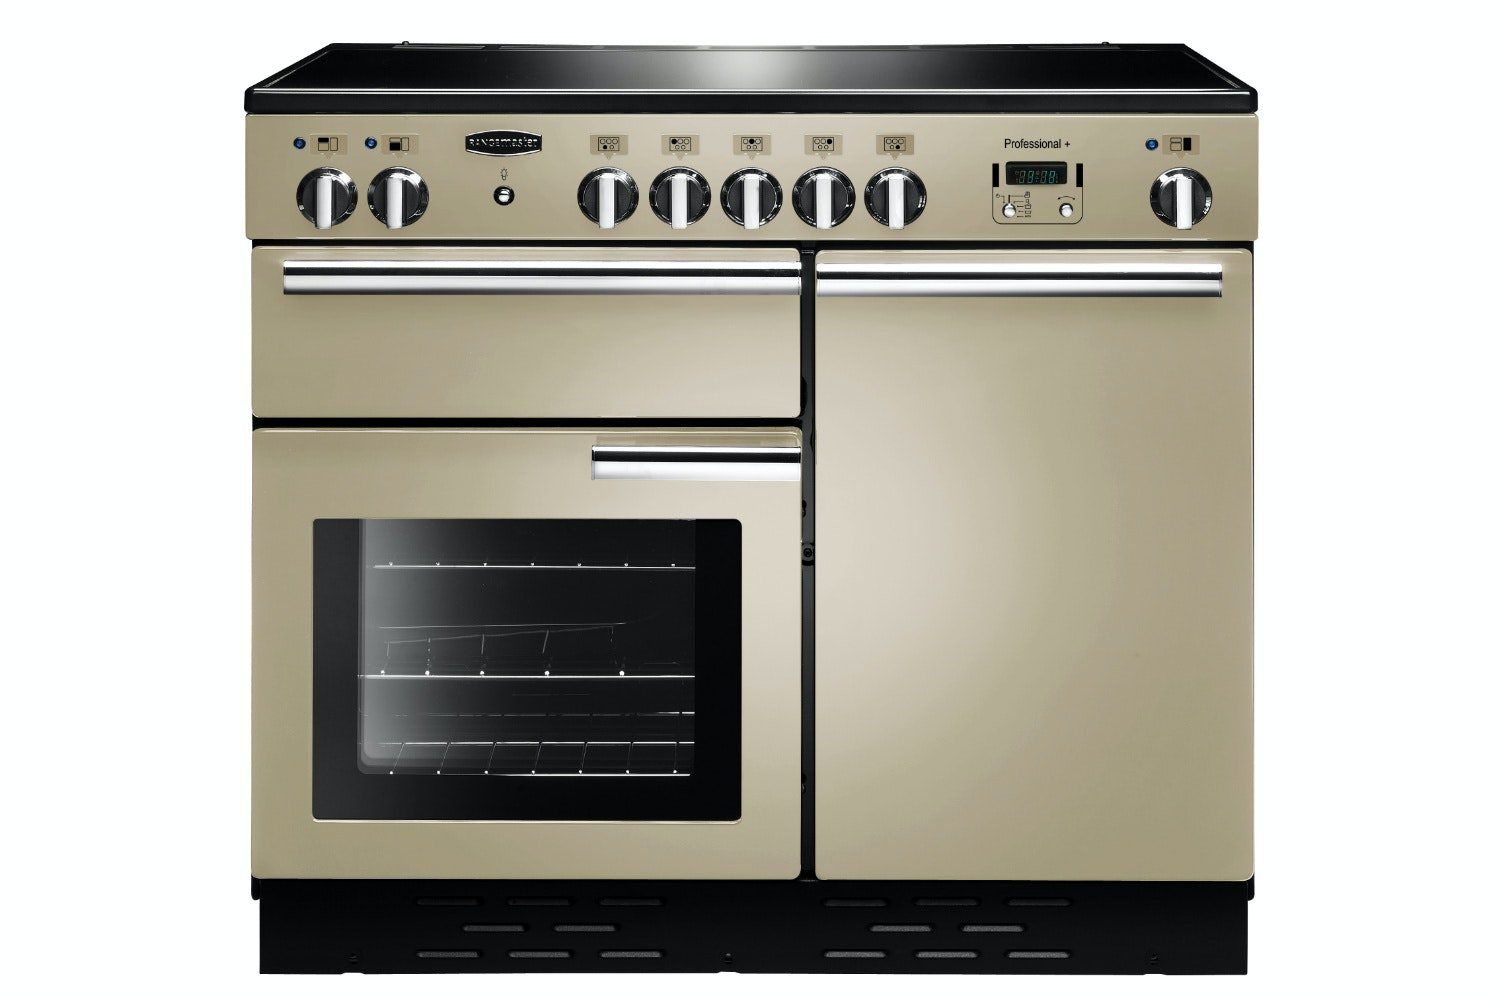 Rangemaster Pro Plus 100cm Electric Range Cooker | PROP100EICR/C | Cream